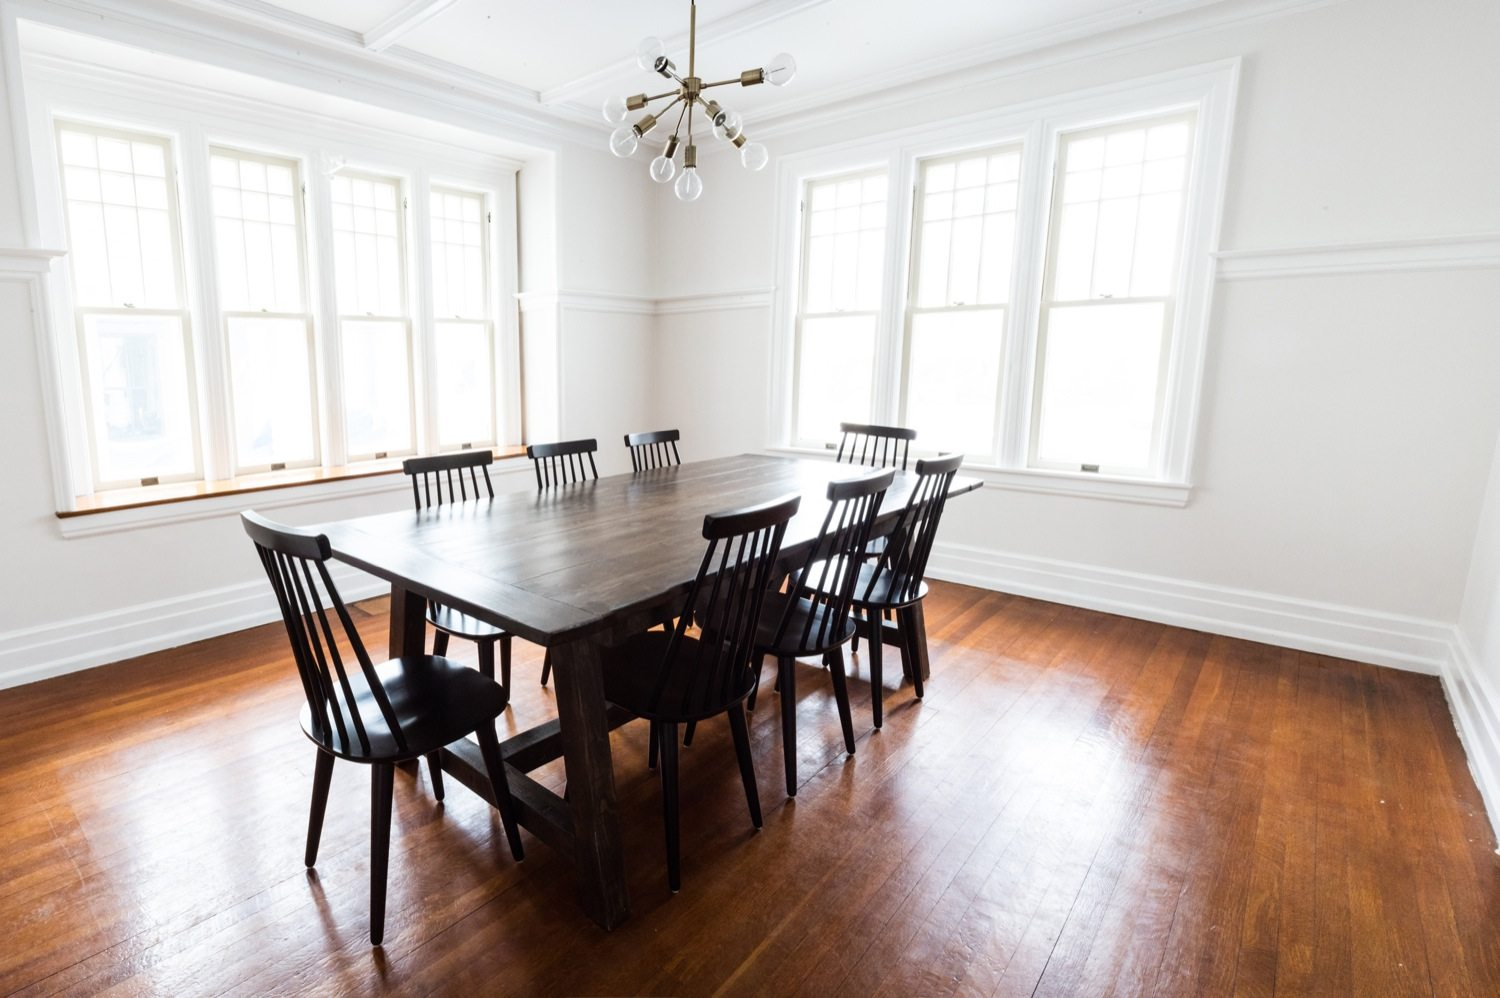 Beau Dining Room Renovation | Old House Ideas, Home Decor Ideas, Renovating  Ideas, Renovation